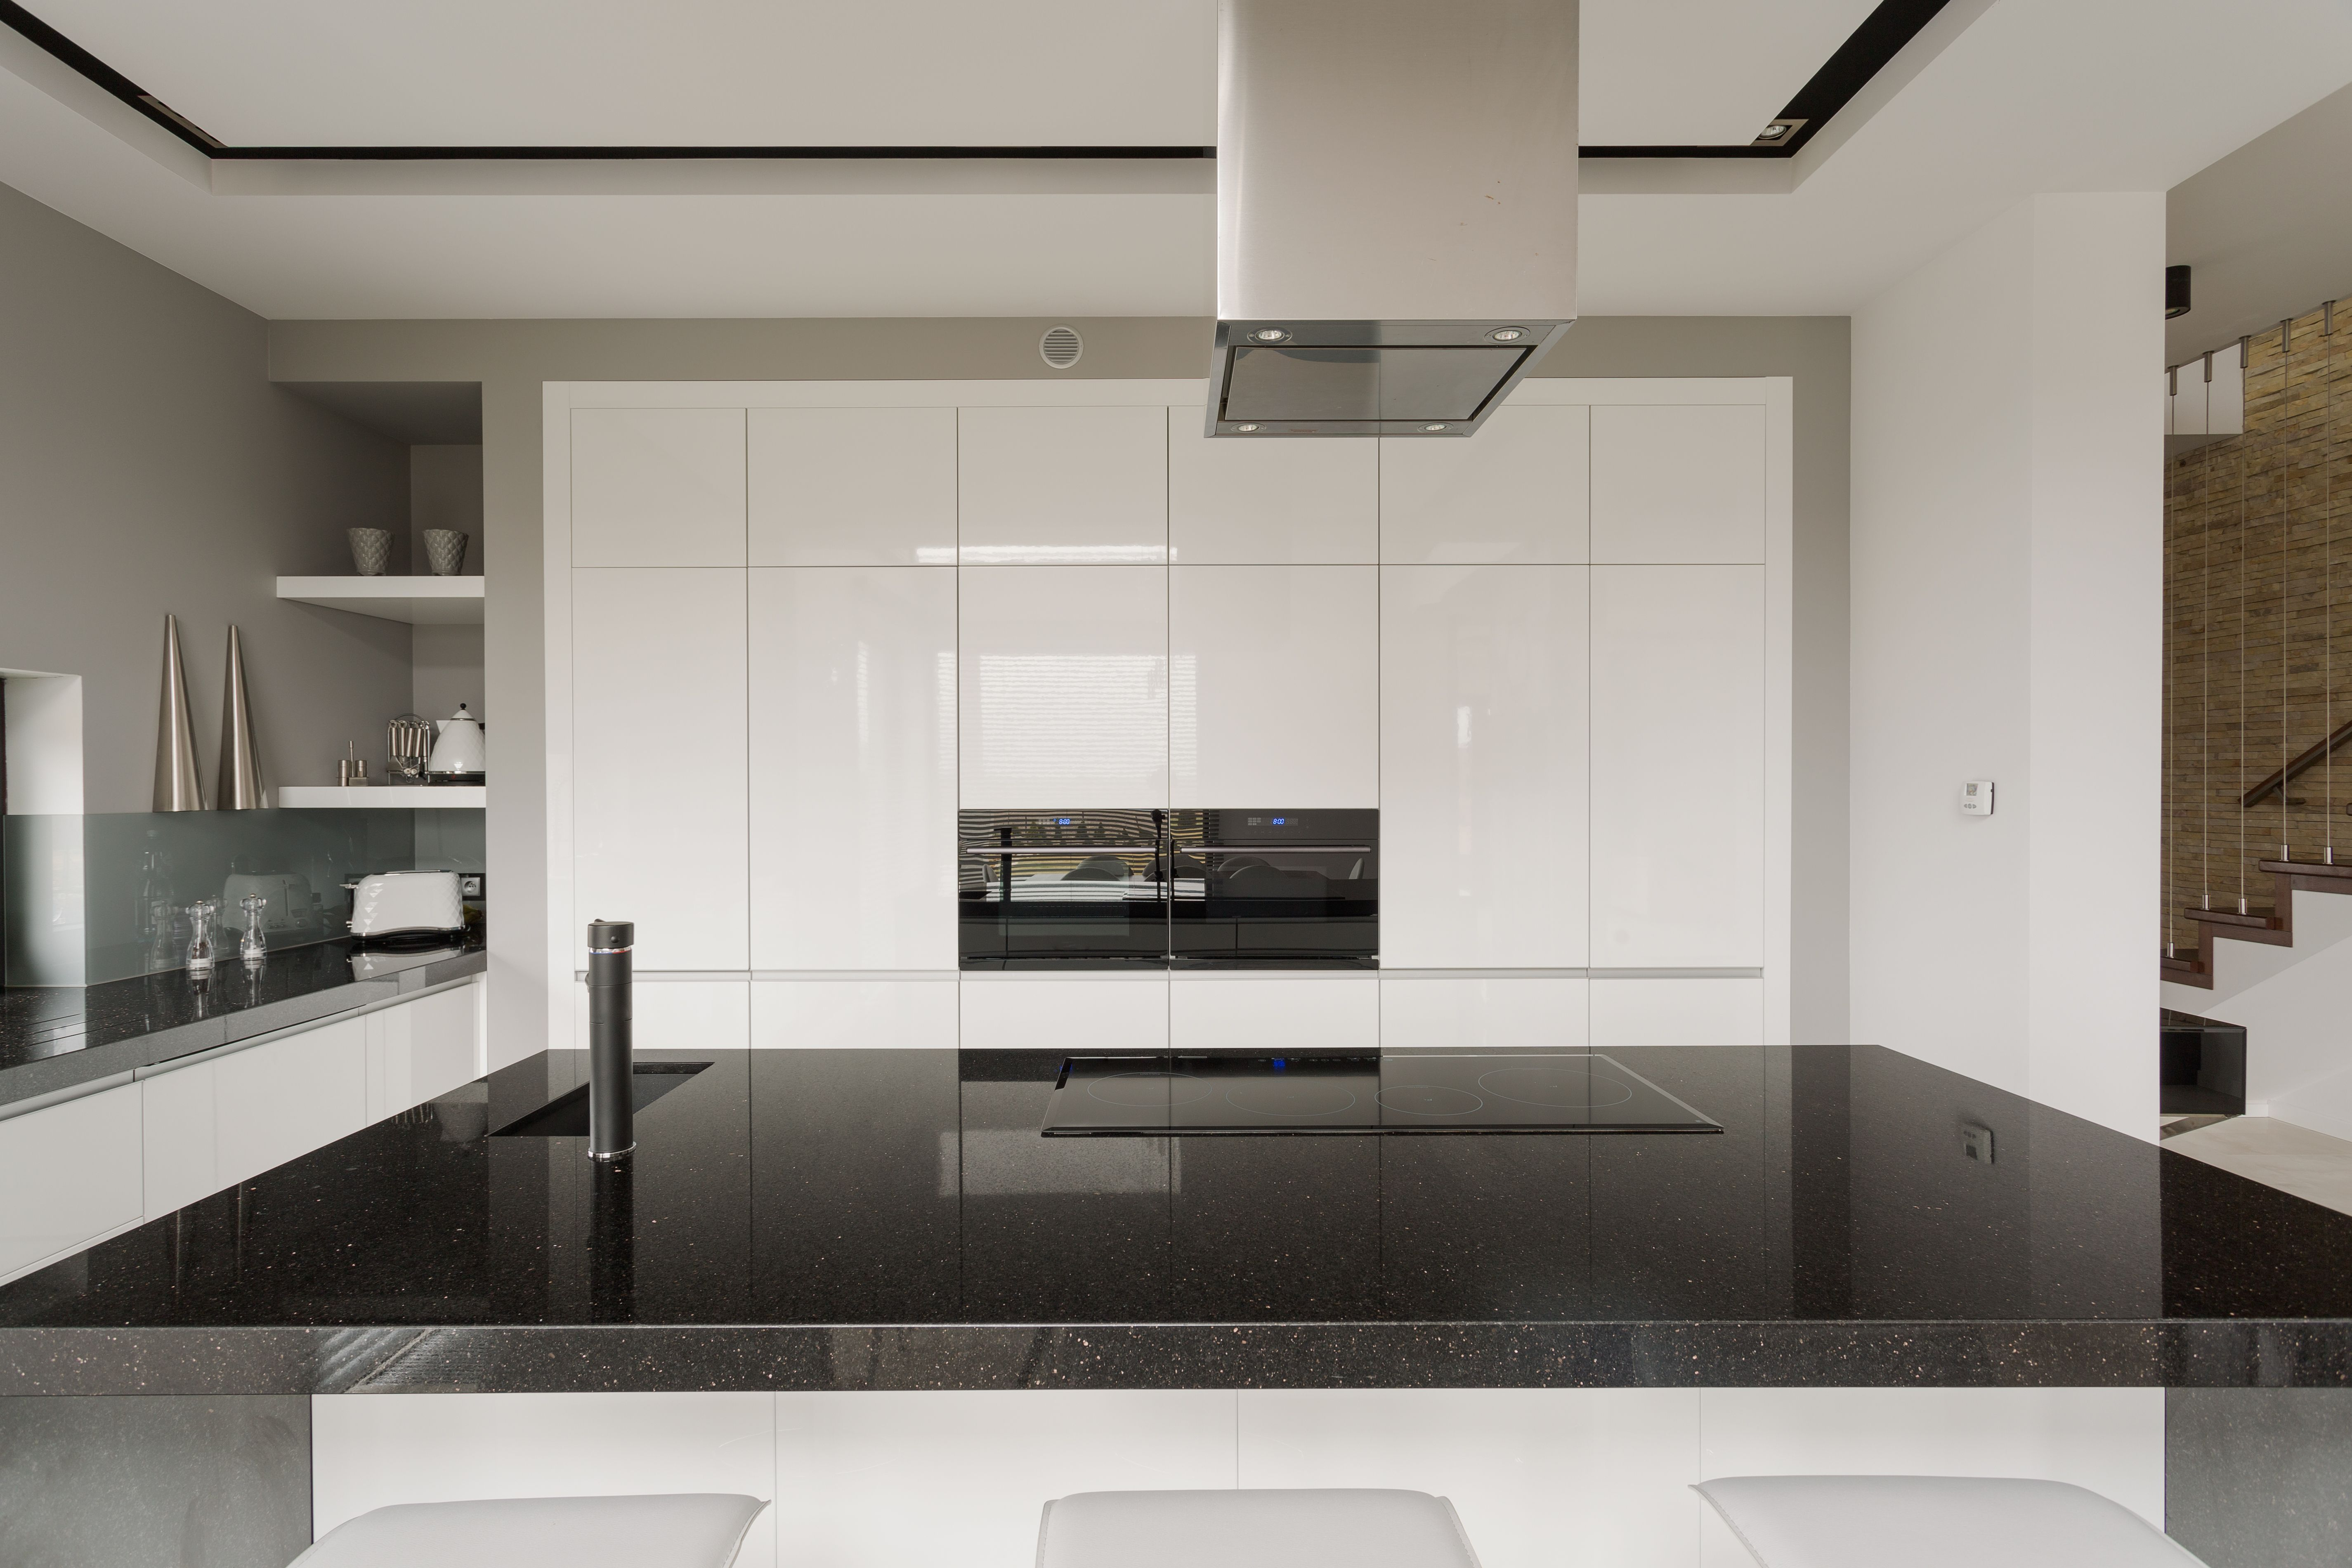 Black is starting to make an appearance as a key kitchen